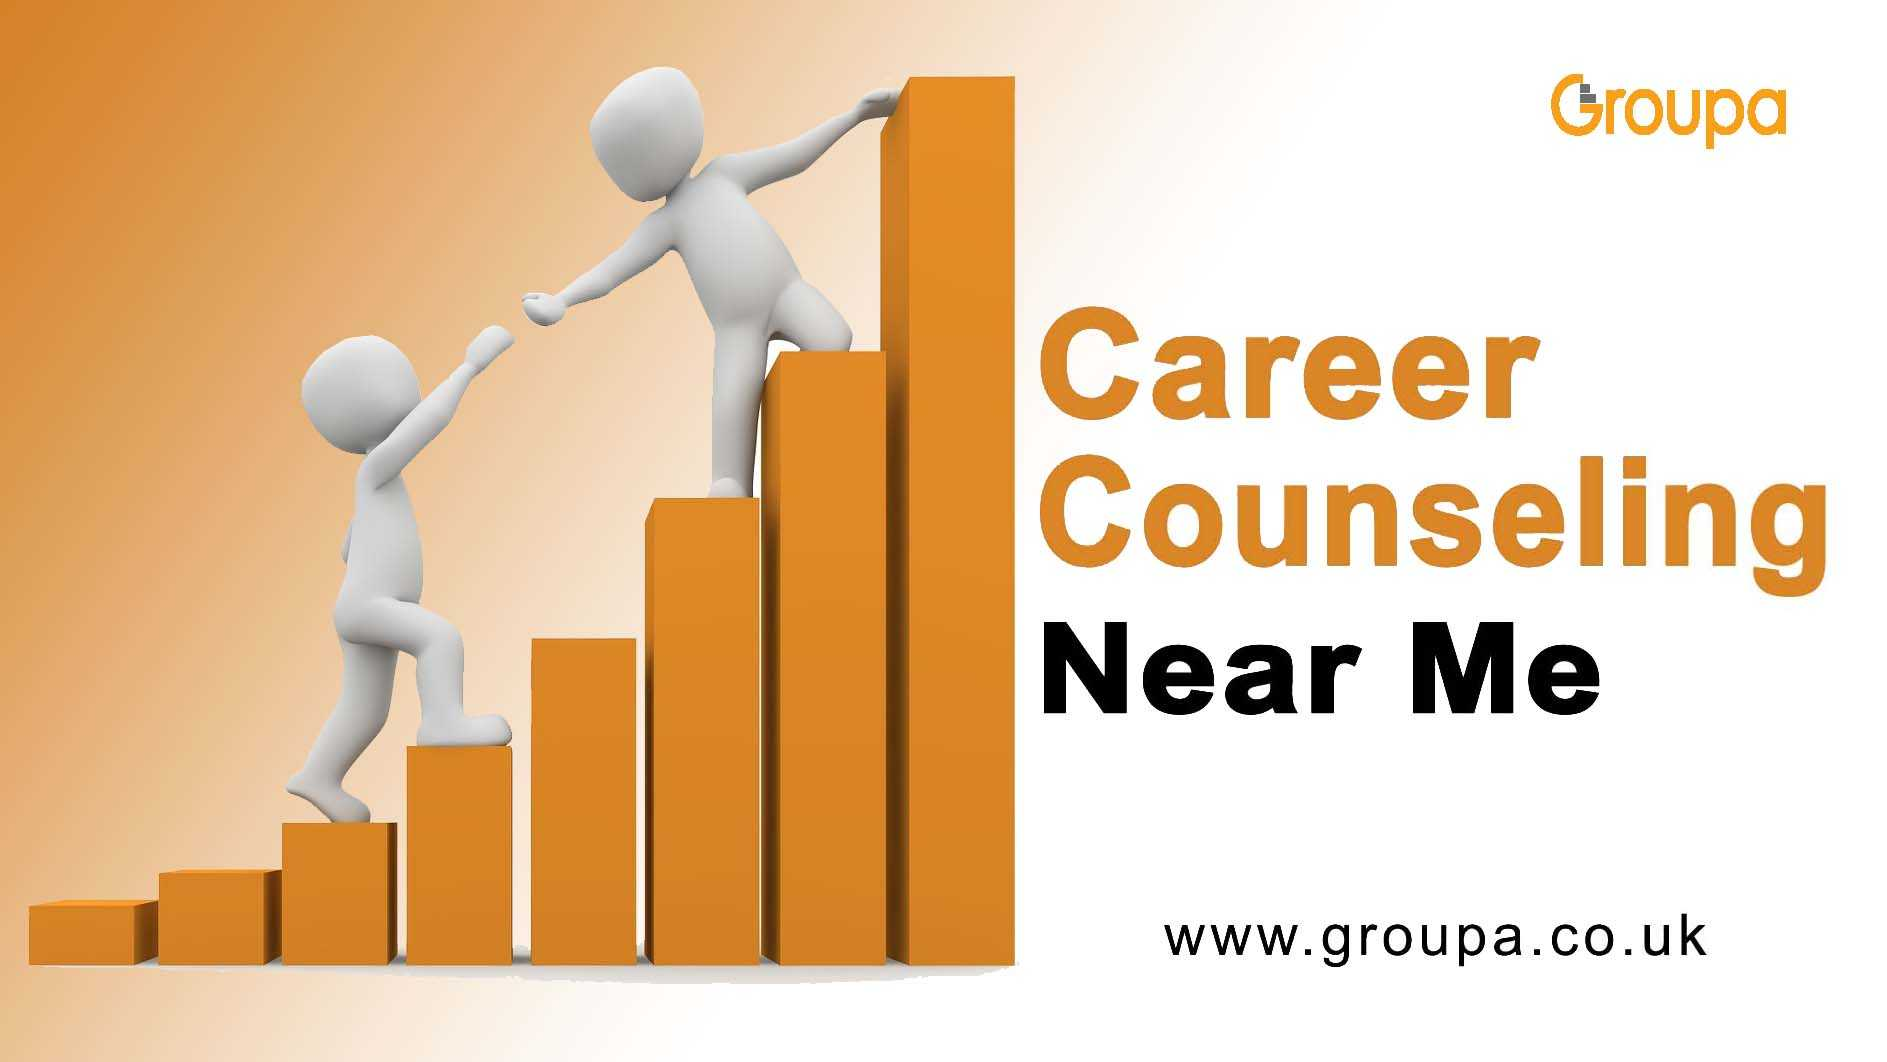 Career Counseling Near Me